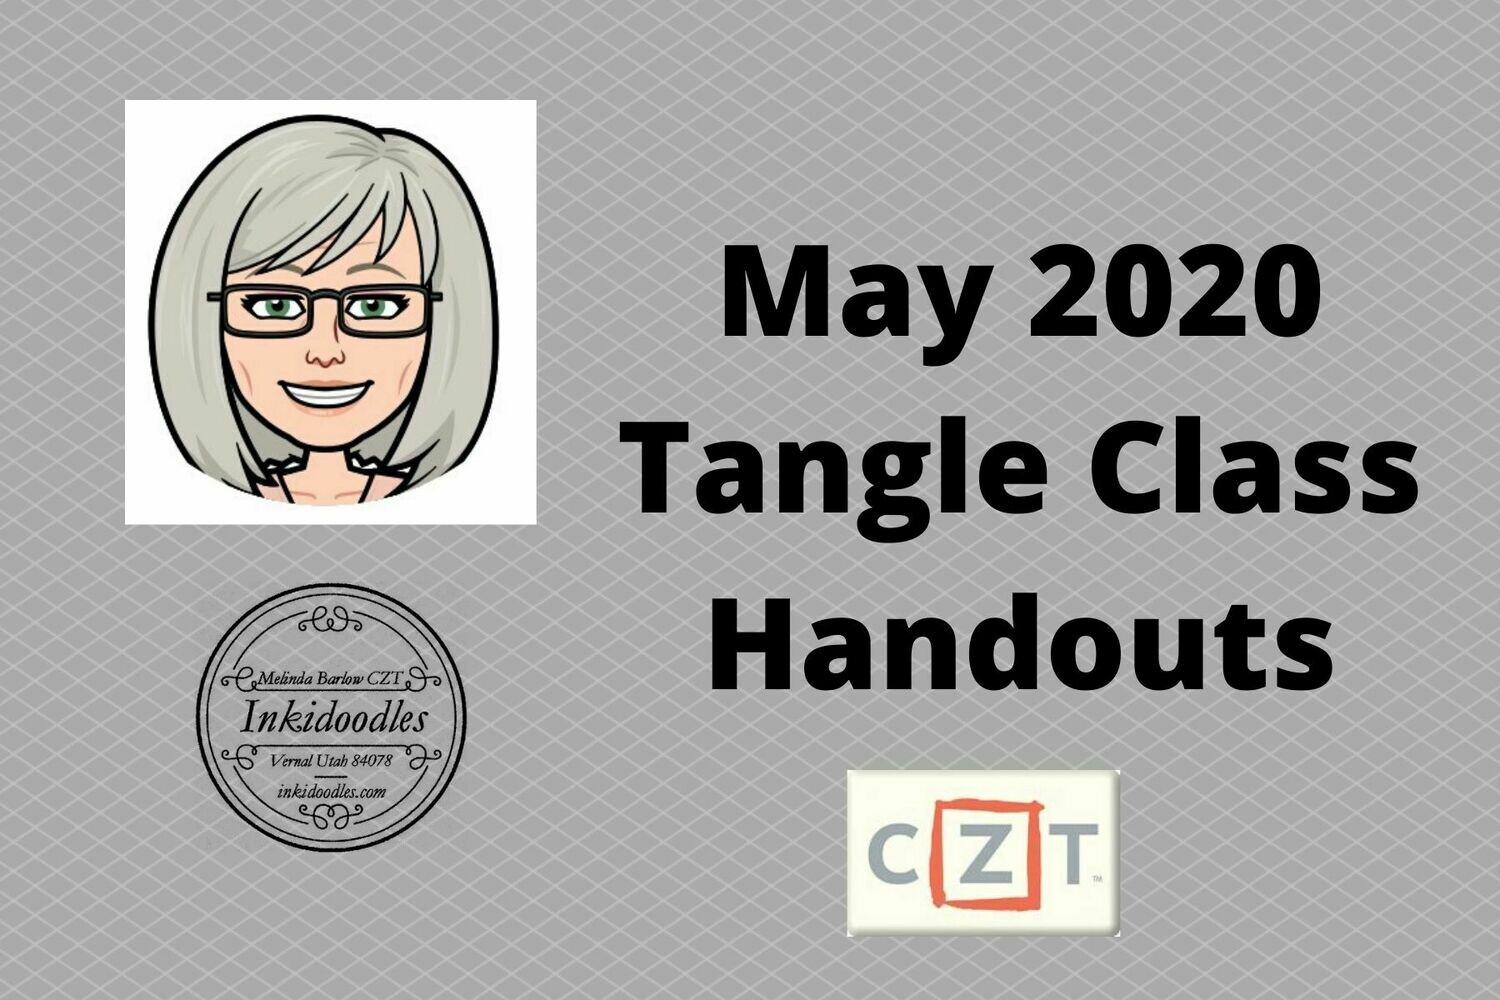 May Zoom Zentangle Class Handouts